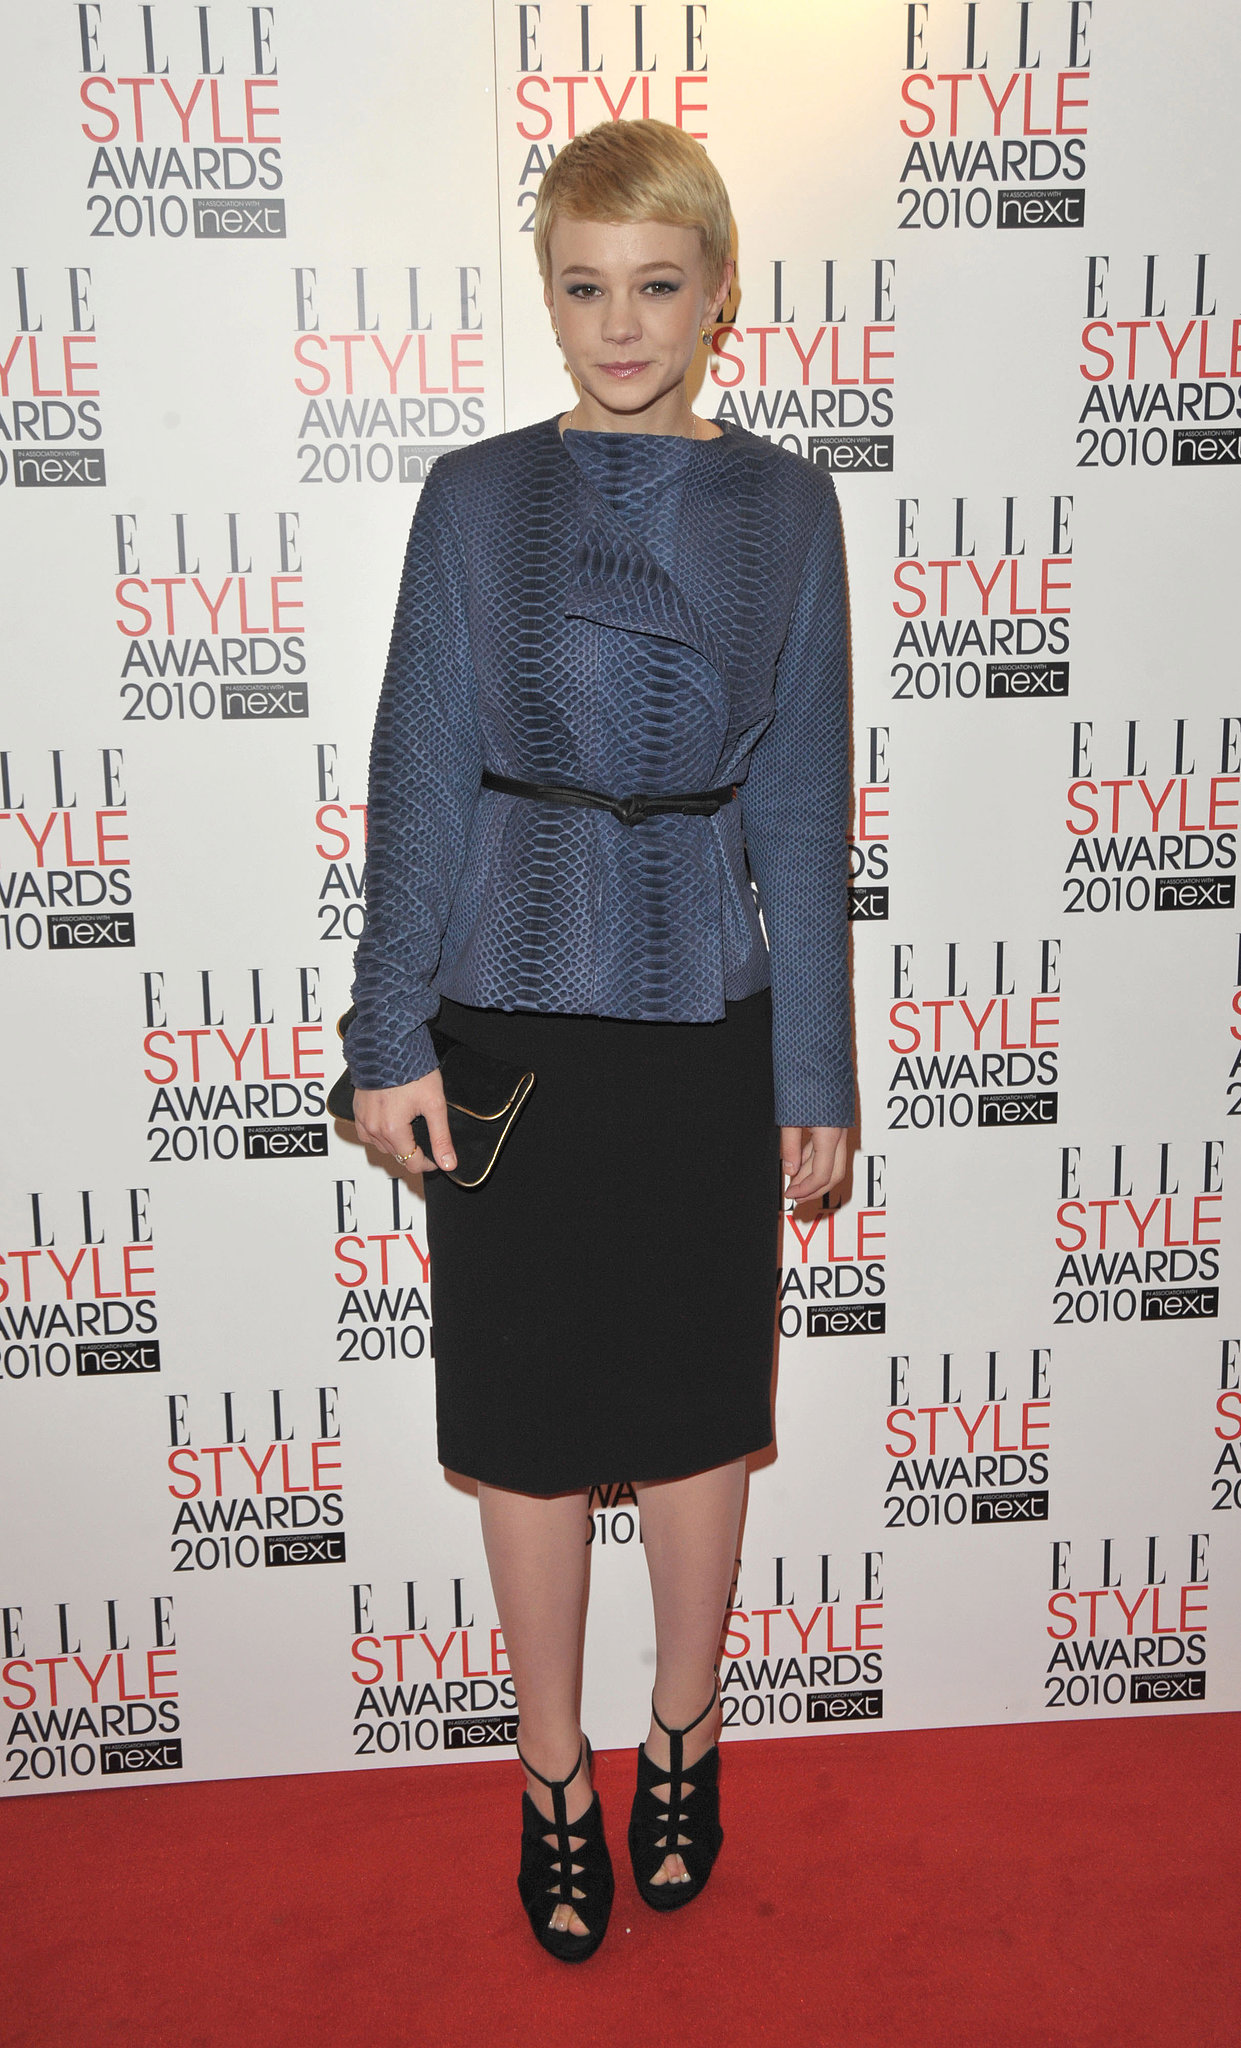 Carey Mulligan in The Row at the 2010 Elle Style Awards